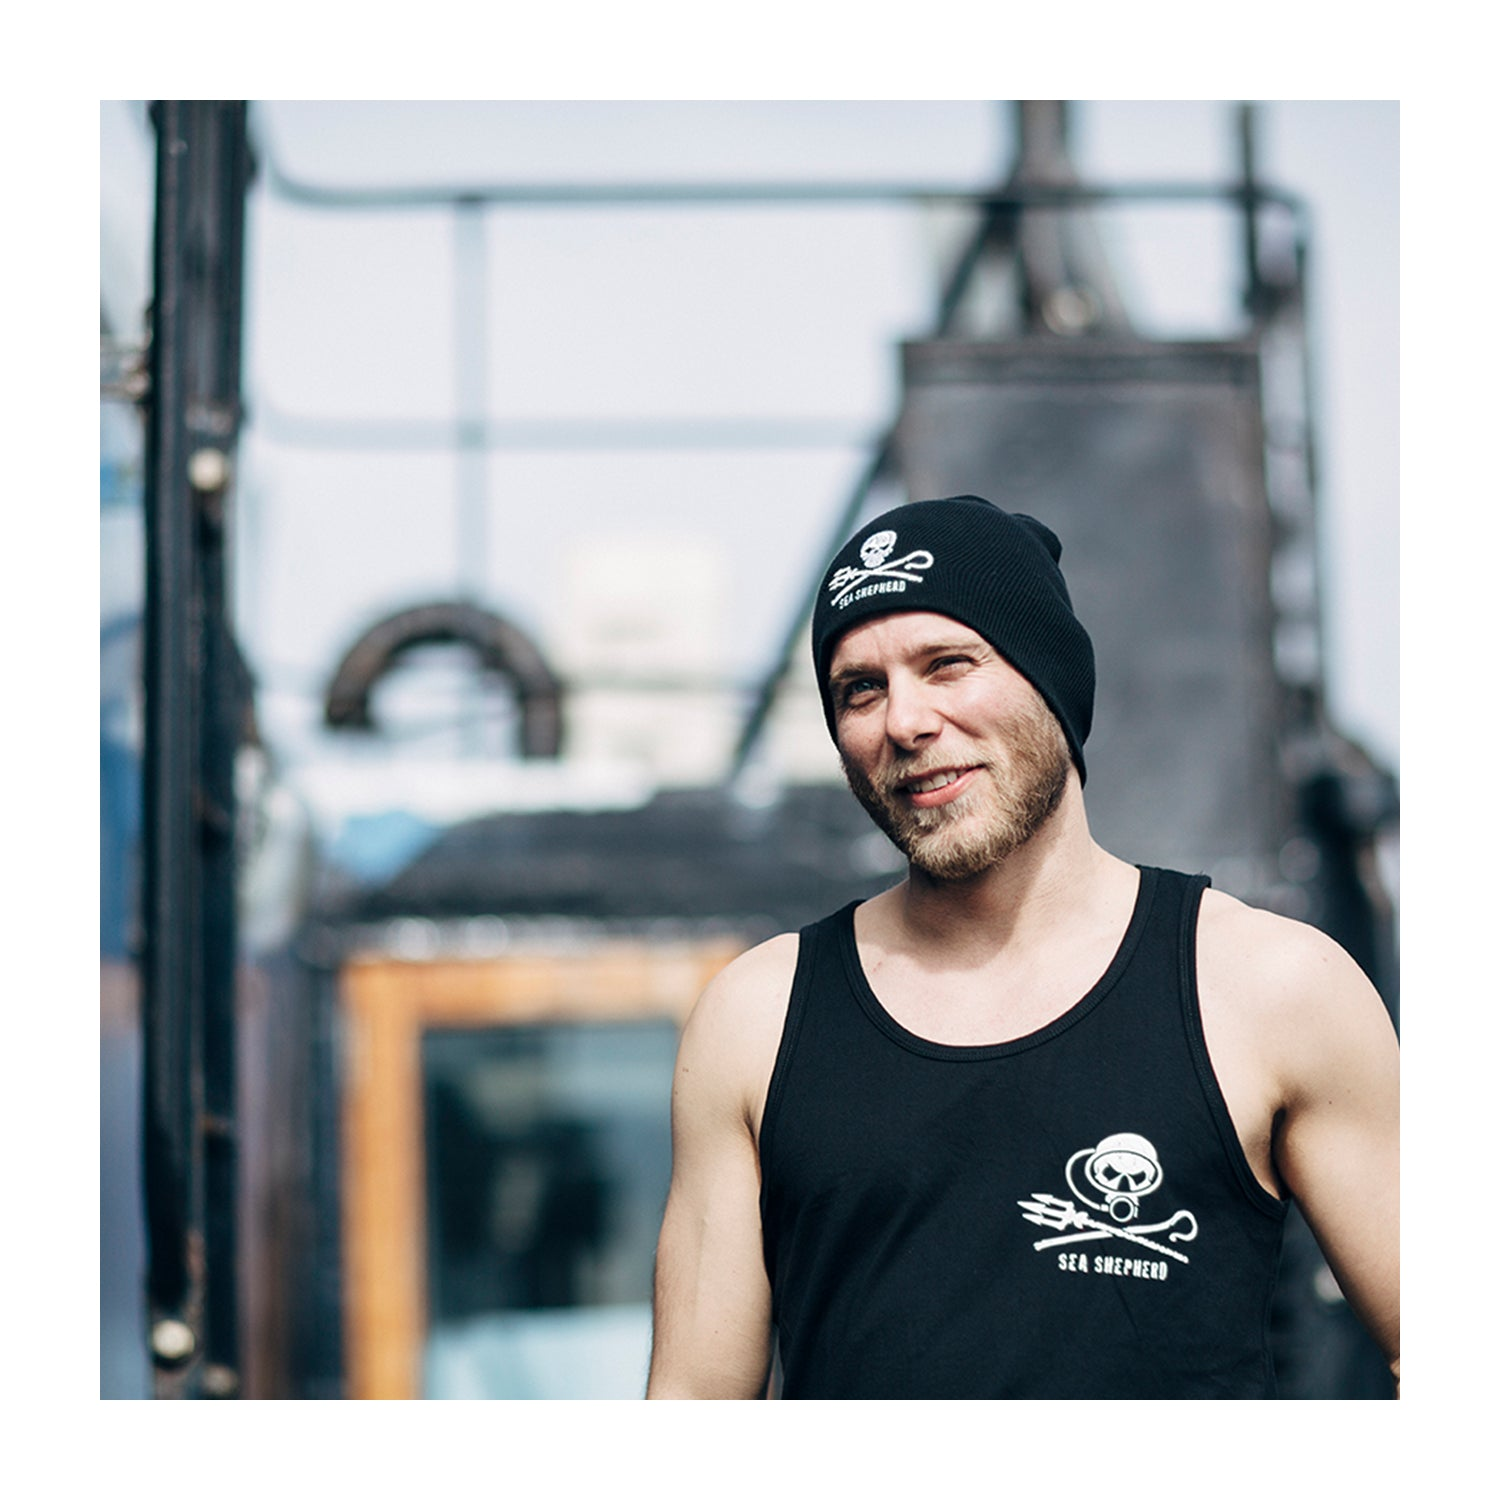 Sea Shepherd Dive Unisex Singlet